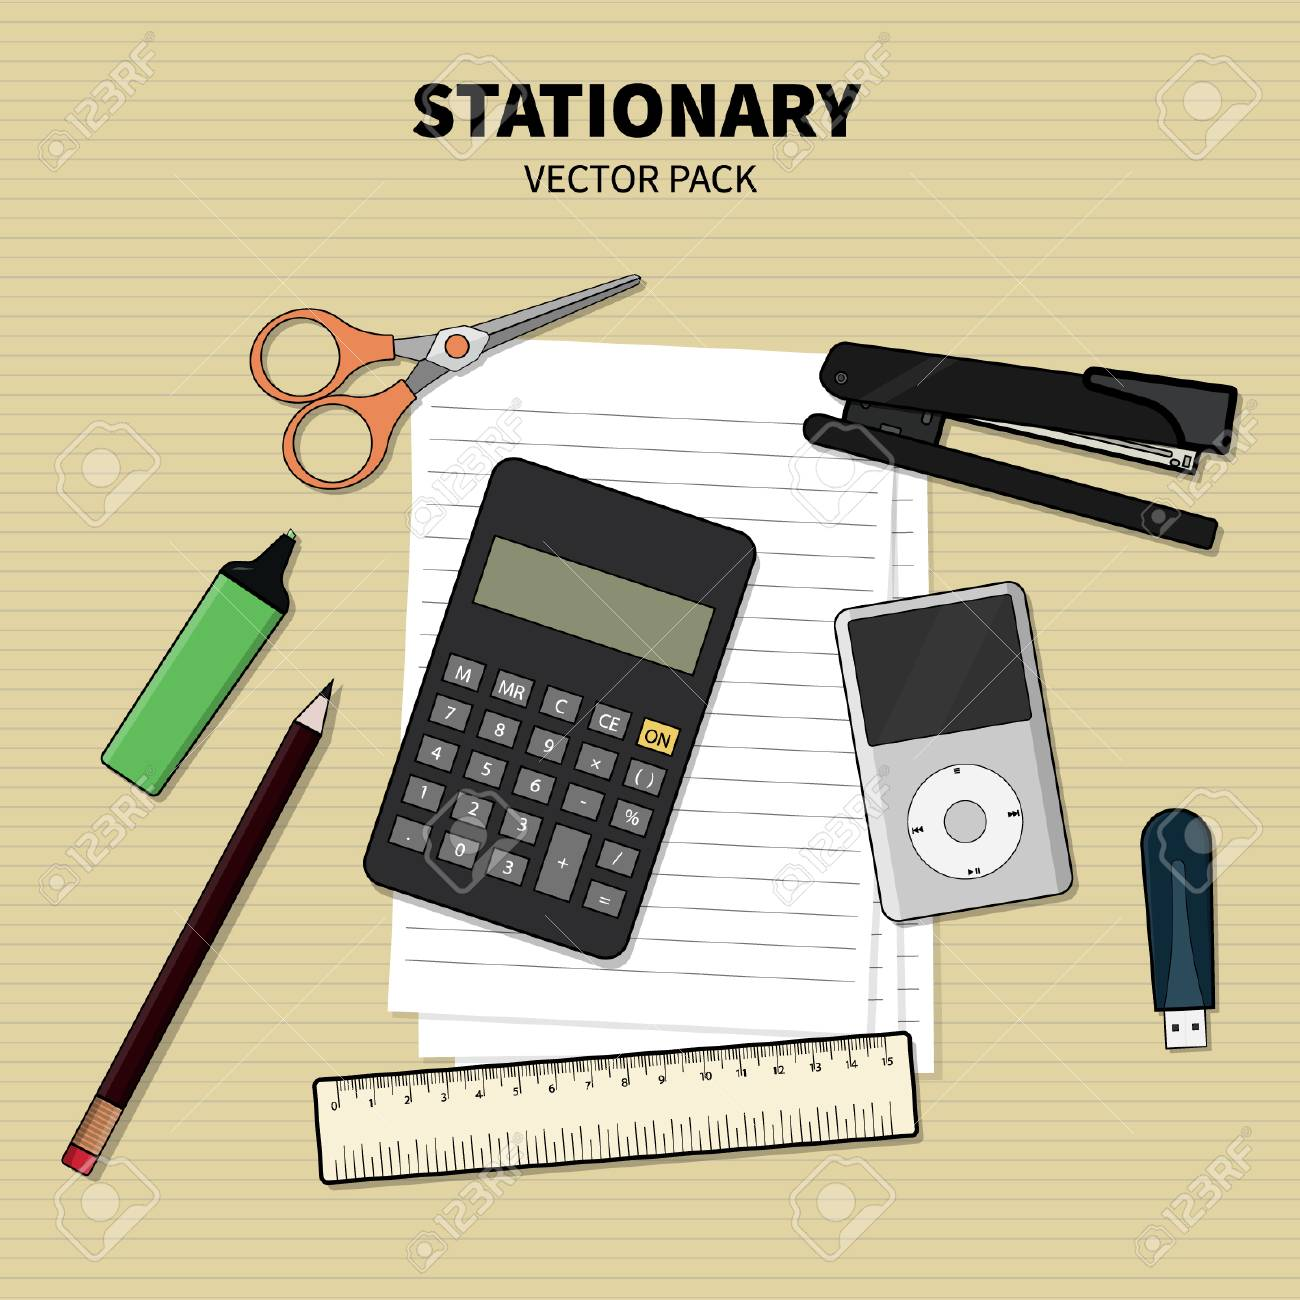 Stationary Box - Vector Pack - 110628681